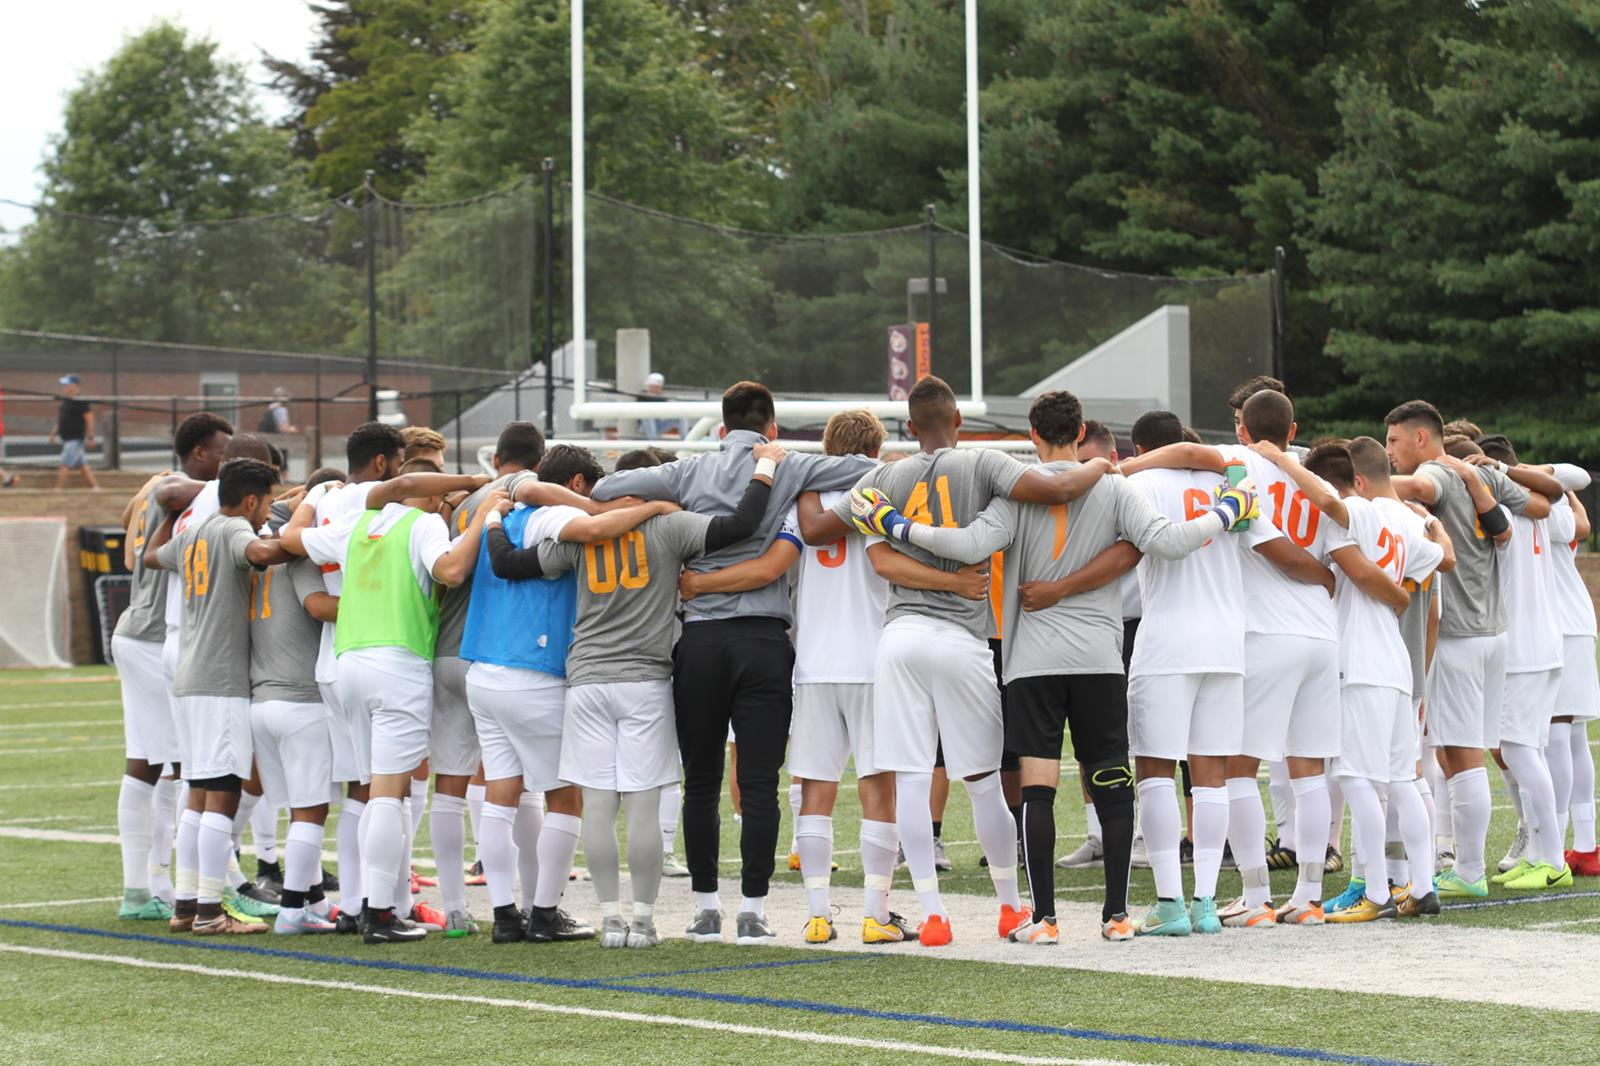 Post Eagles Mens College Soccer - Post News, Scores, and Stats